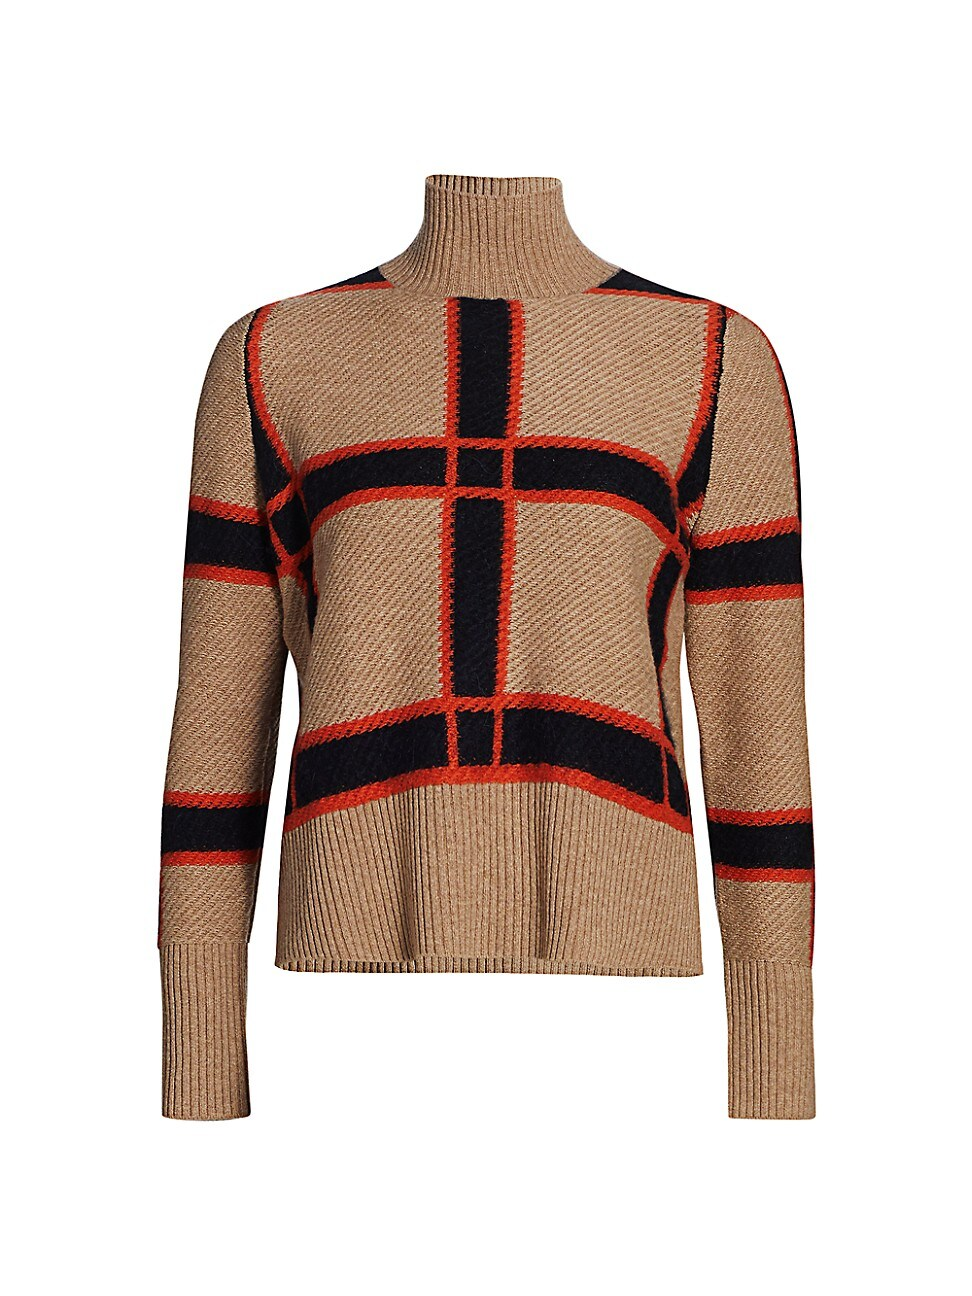 Akris Punto WOMEN'S PLAID WOOL-BLEND KNIT TURTLENECK SWEATER